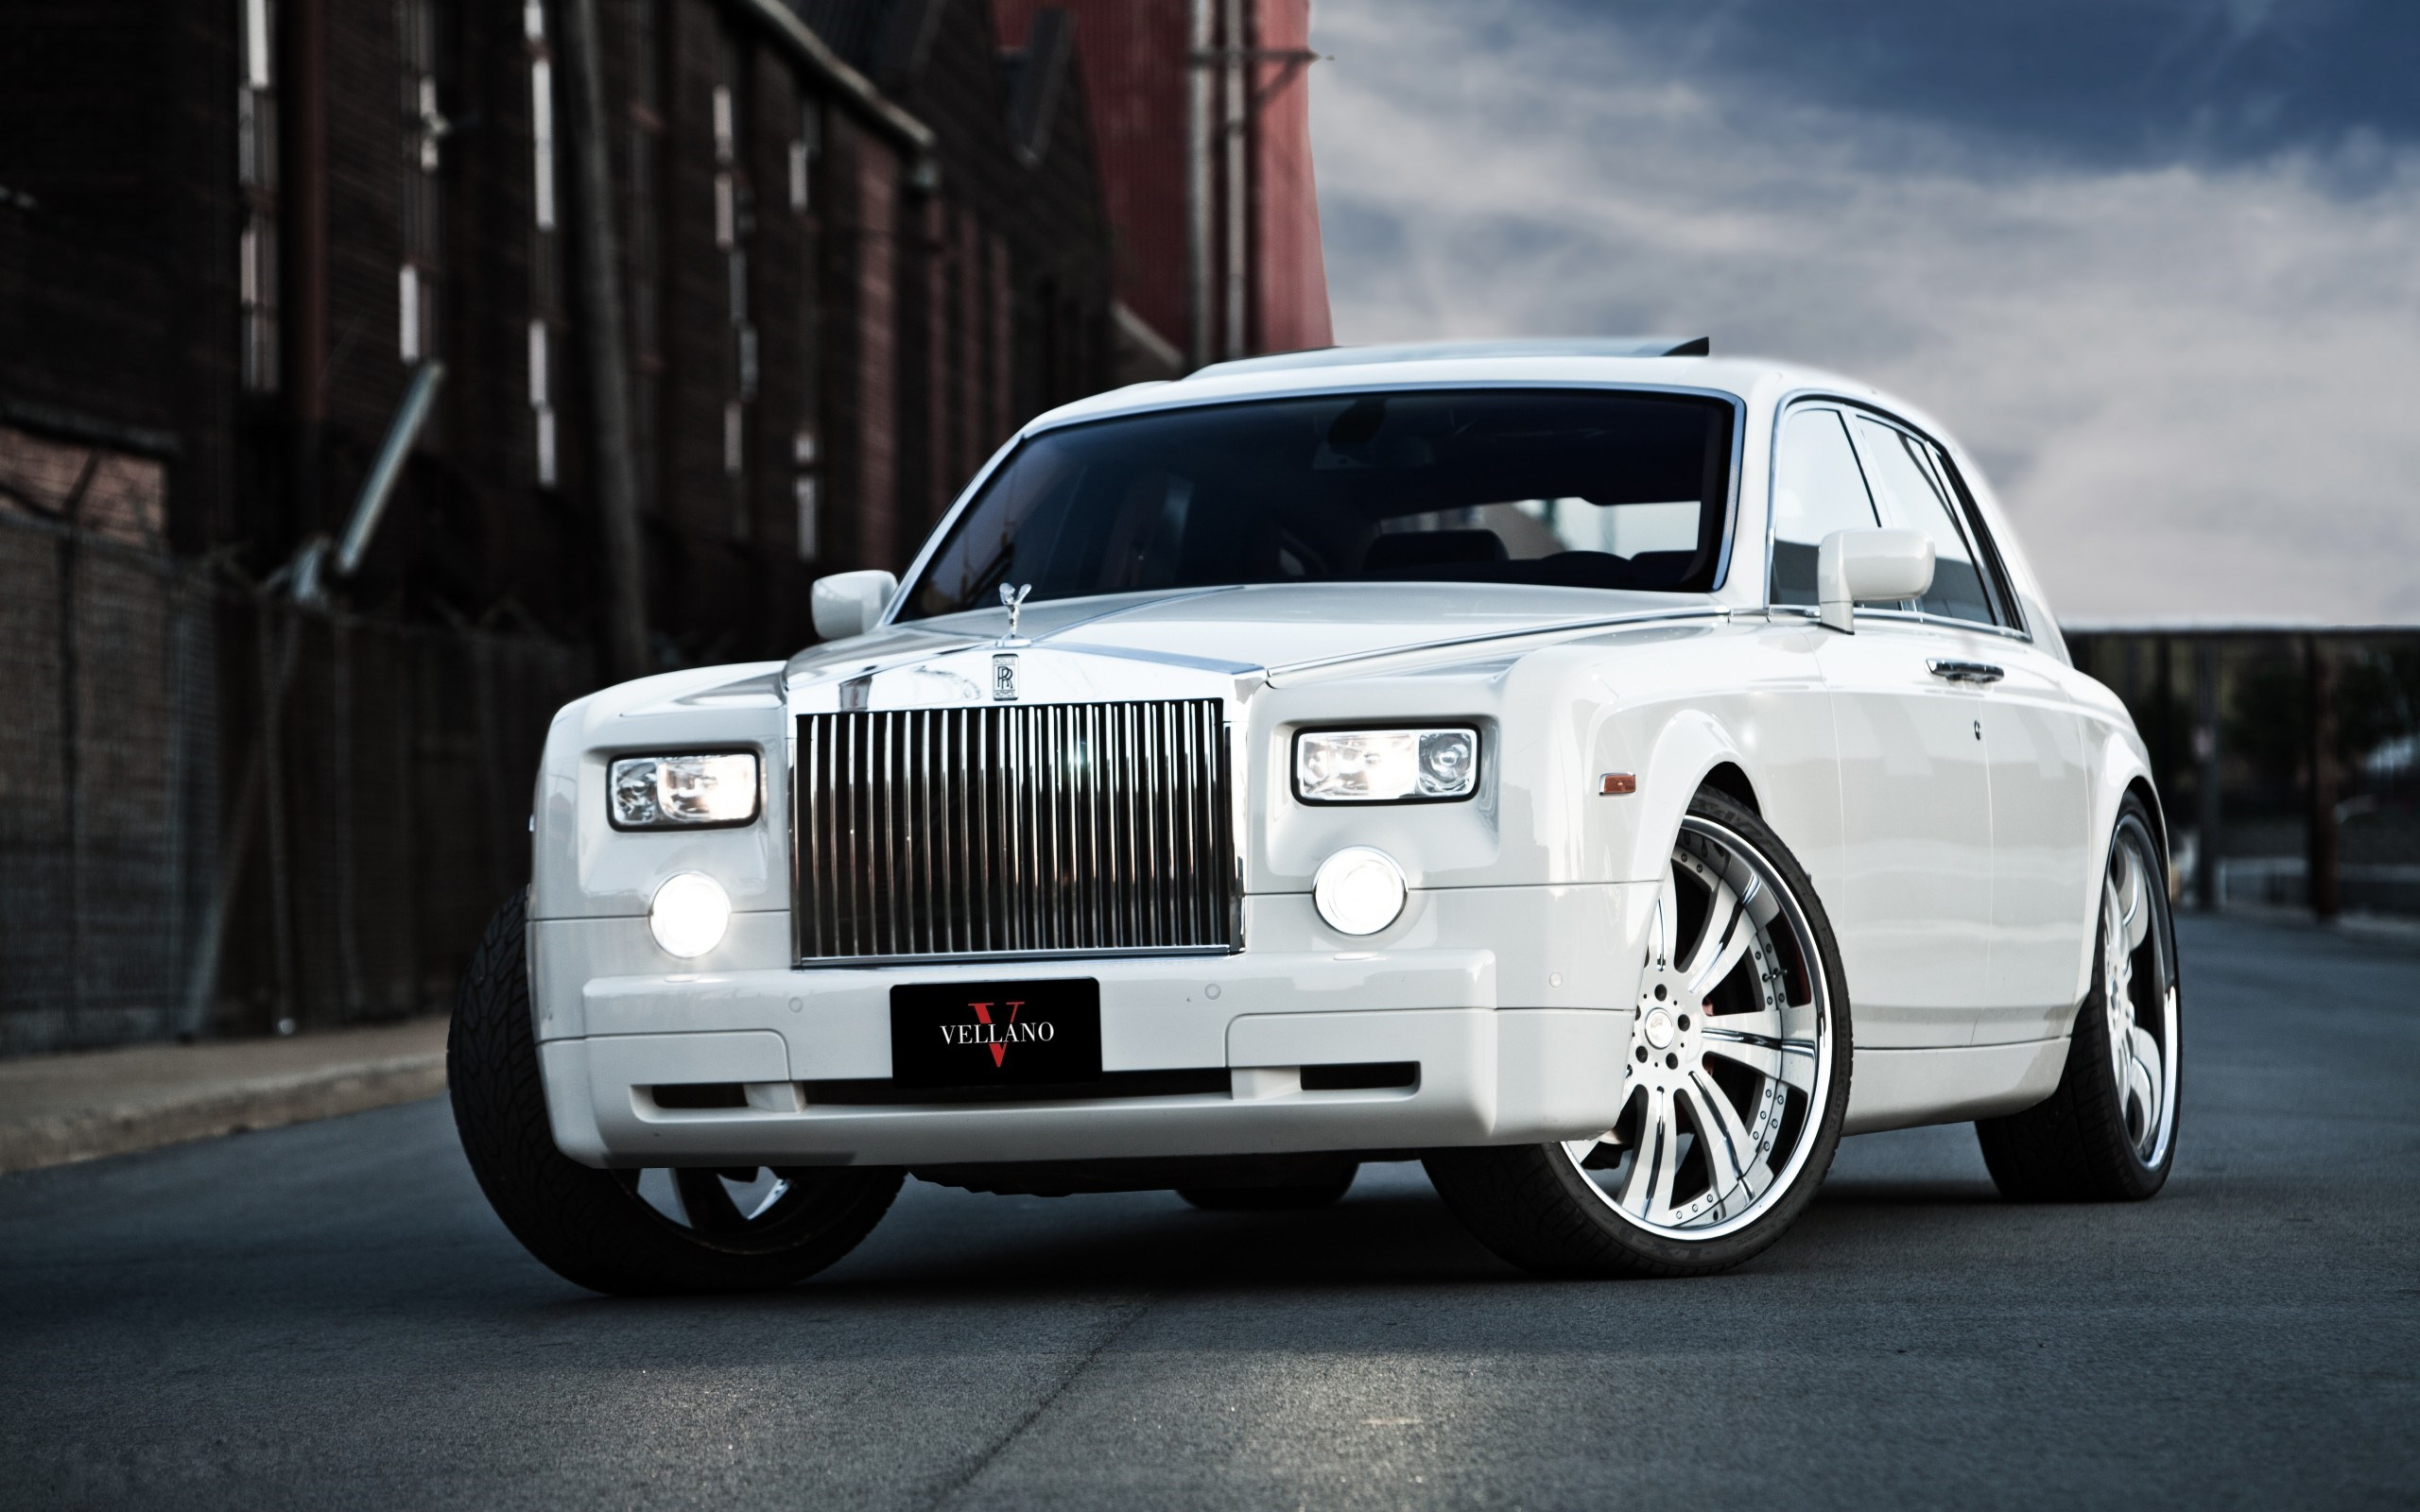 Awesome Rolls Royce